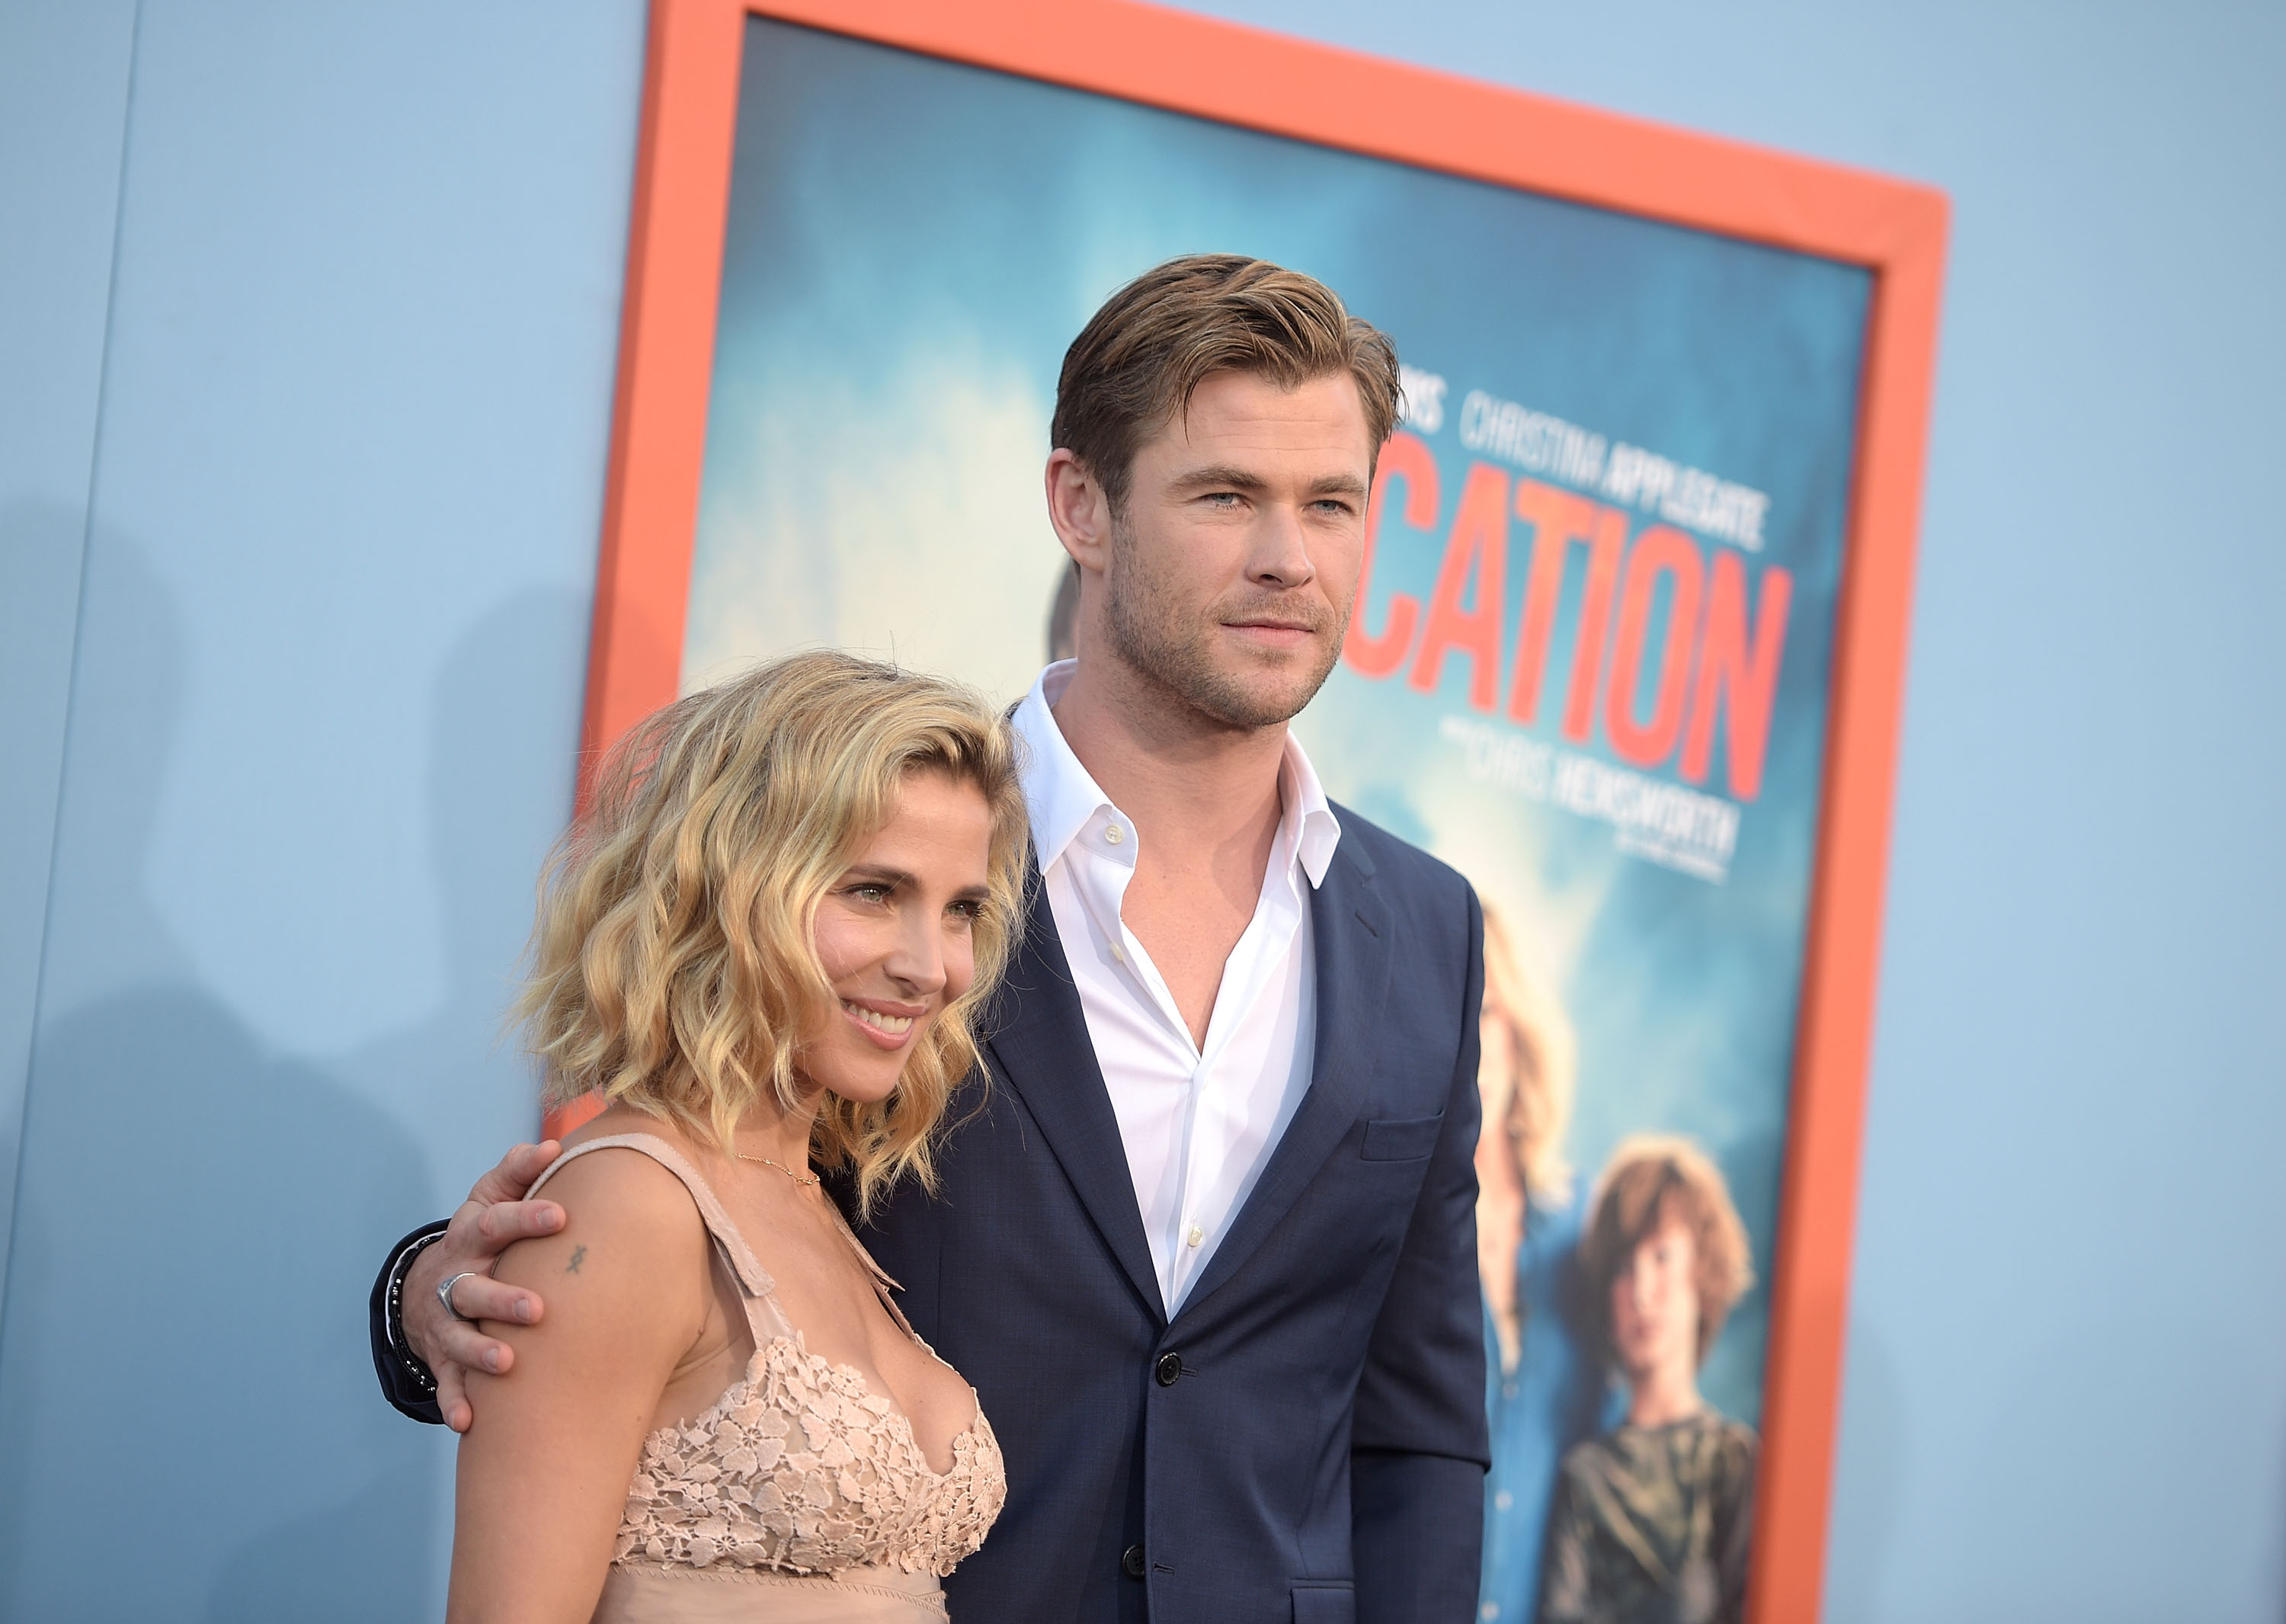 How Did Chris Hemsworth & Elsa Pataky Meet? There Wasn't A